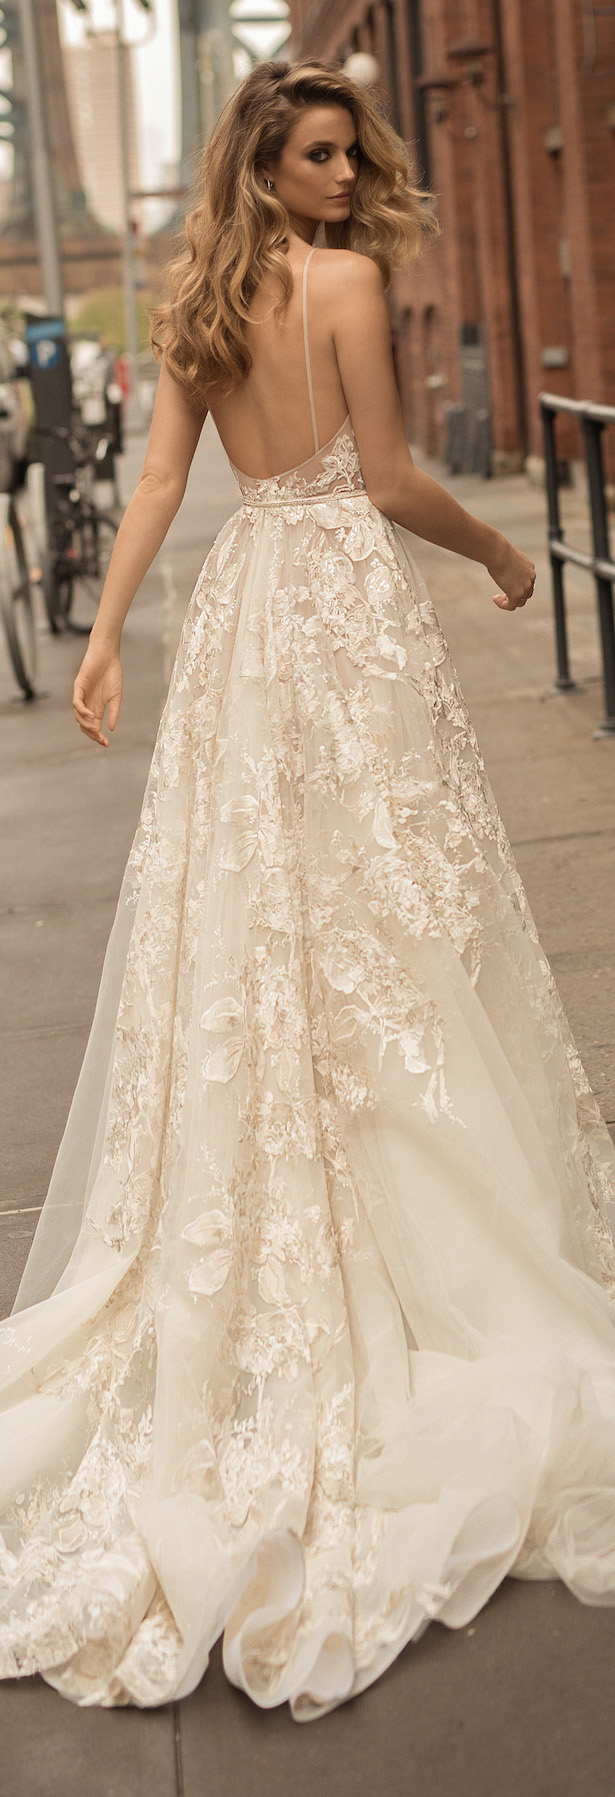 Berta wedding dress collection spring 2018 belle the for Where to buy berta wedding dresses